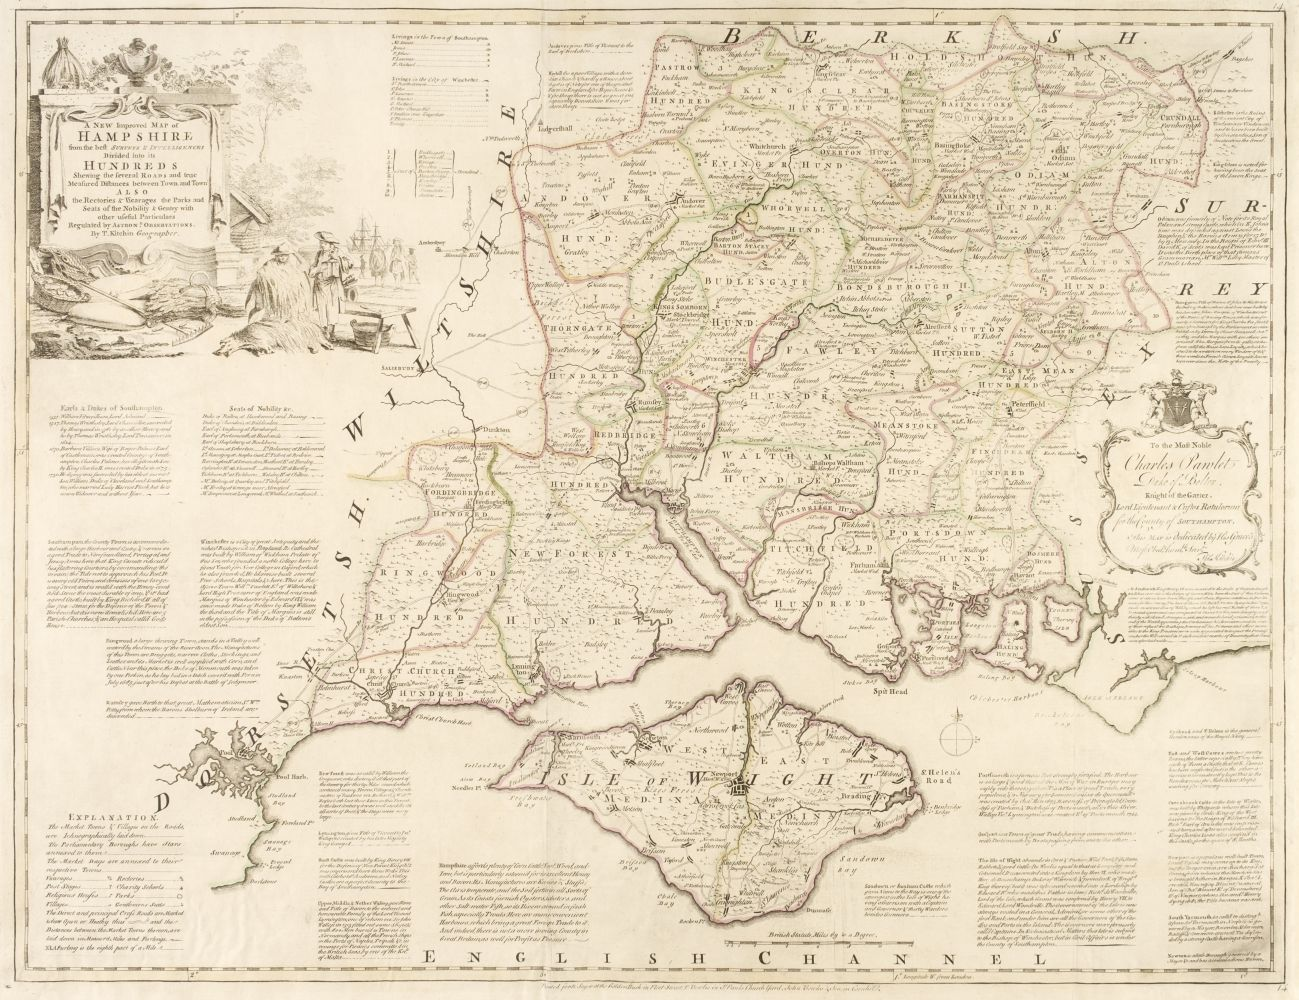 British County Maps. Five engraved maps, 17th & 18th century